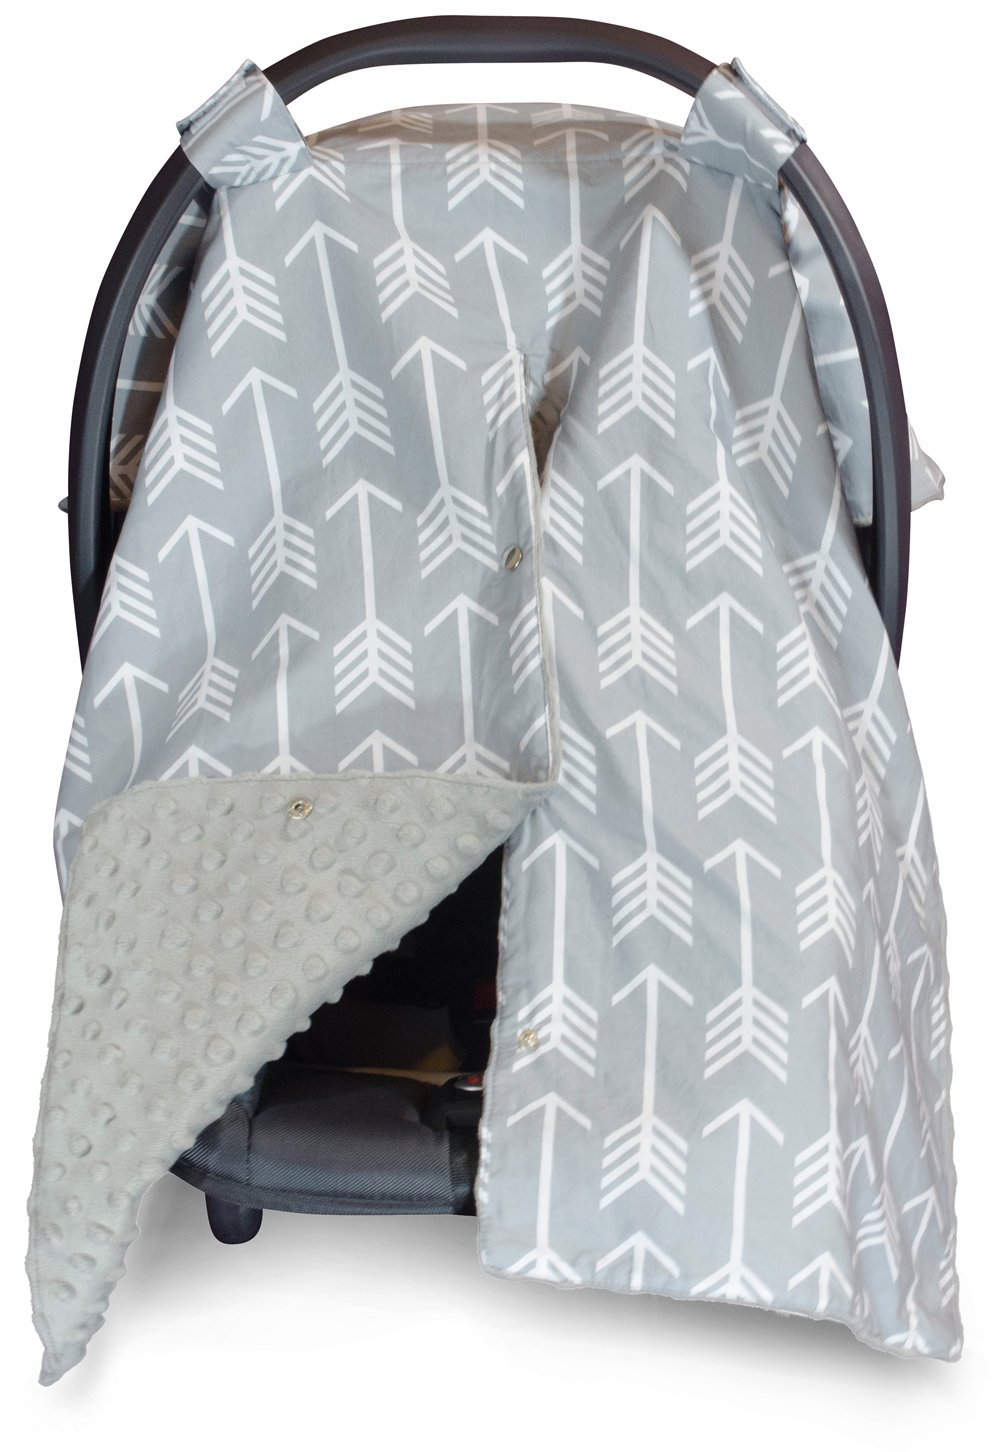 Kids Nu0027 Such 2 in 1 Car Seat Canopy Cover with Peekaboo Opening™ - Large Carseat ...  sc 1 st  Walmart & Kids Nu0027 Such 2 in 1 Car Seat Canopy Cover with Peekaboo Opening ...